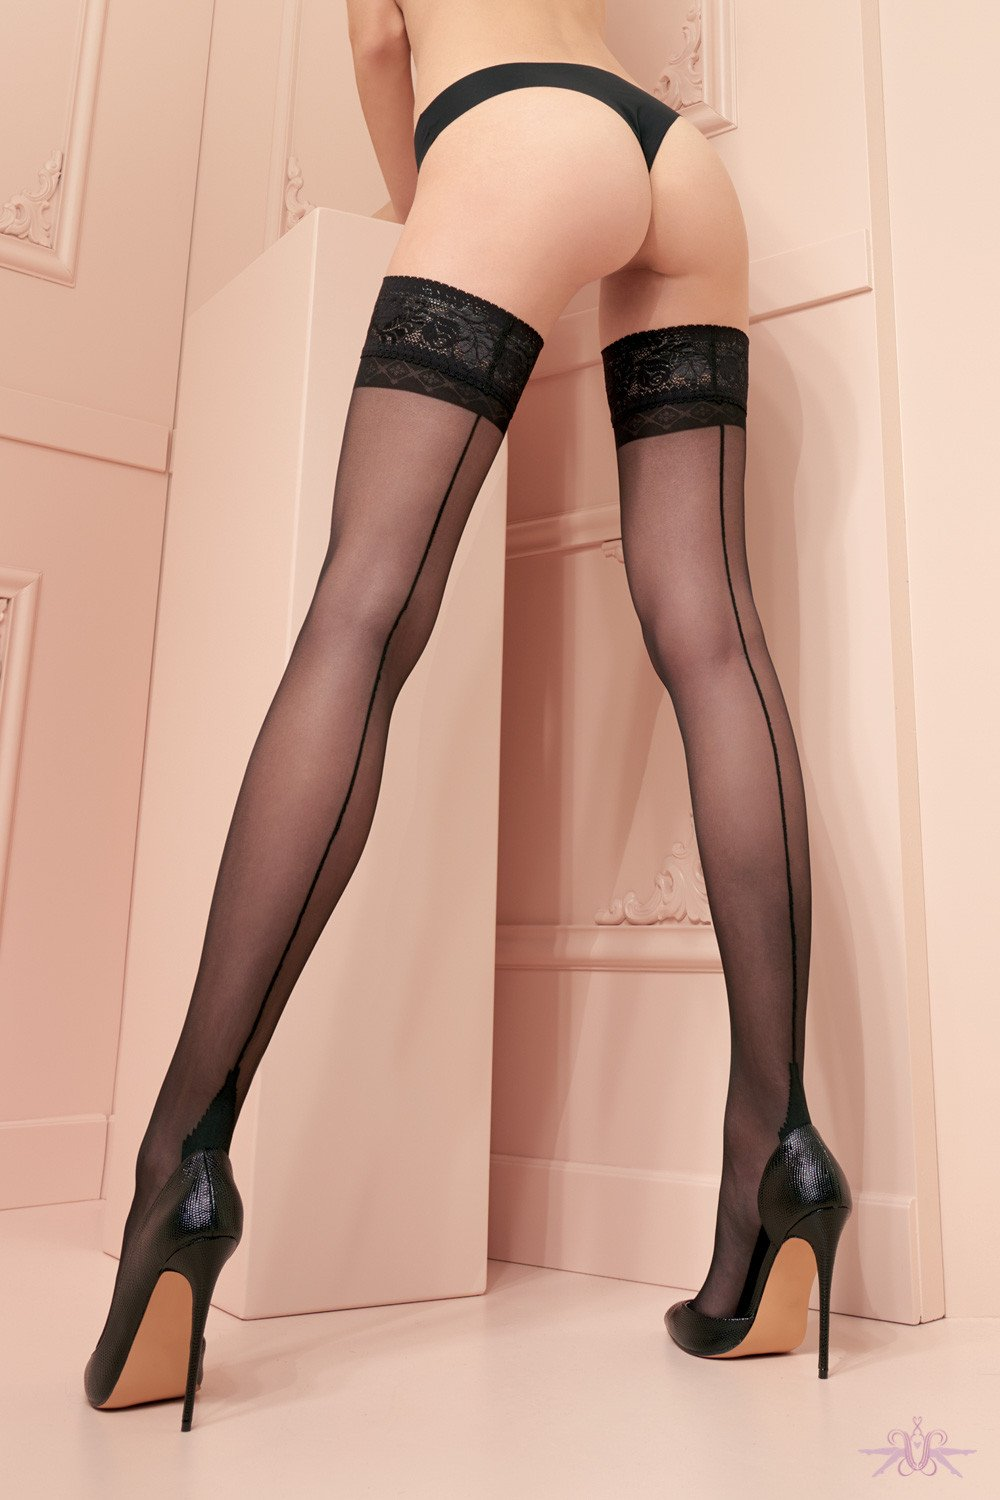 Trasparenze Pennac Hold Ups - The Hosiery Box